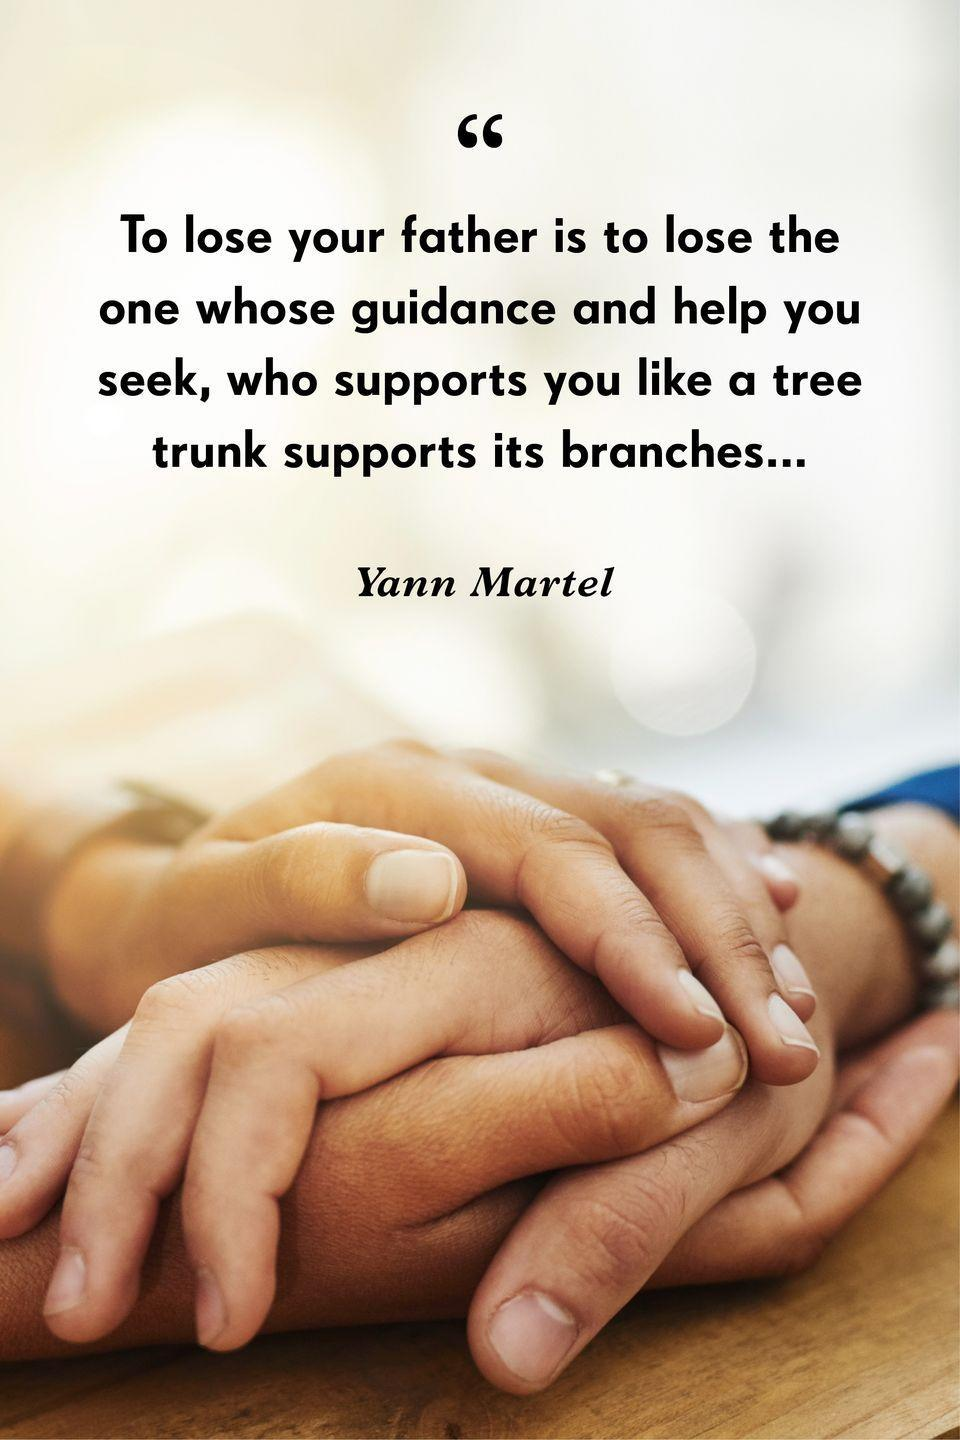 """<p>""""To lose your father is to lose the one whose guidance and help you seek, who supports you like a tree trunk supports its branches.""""</p>"""